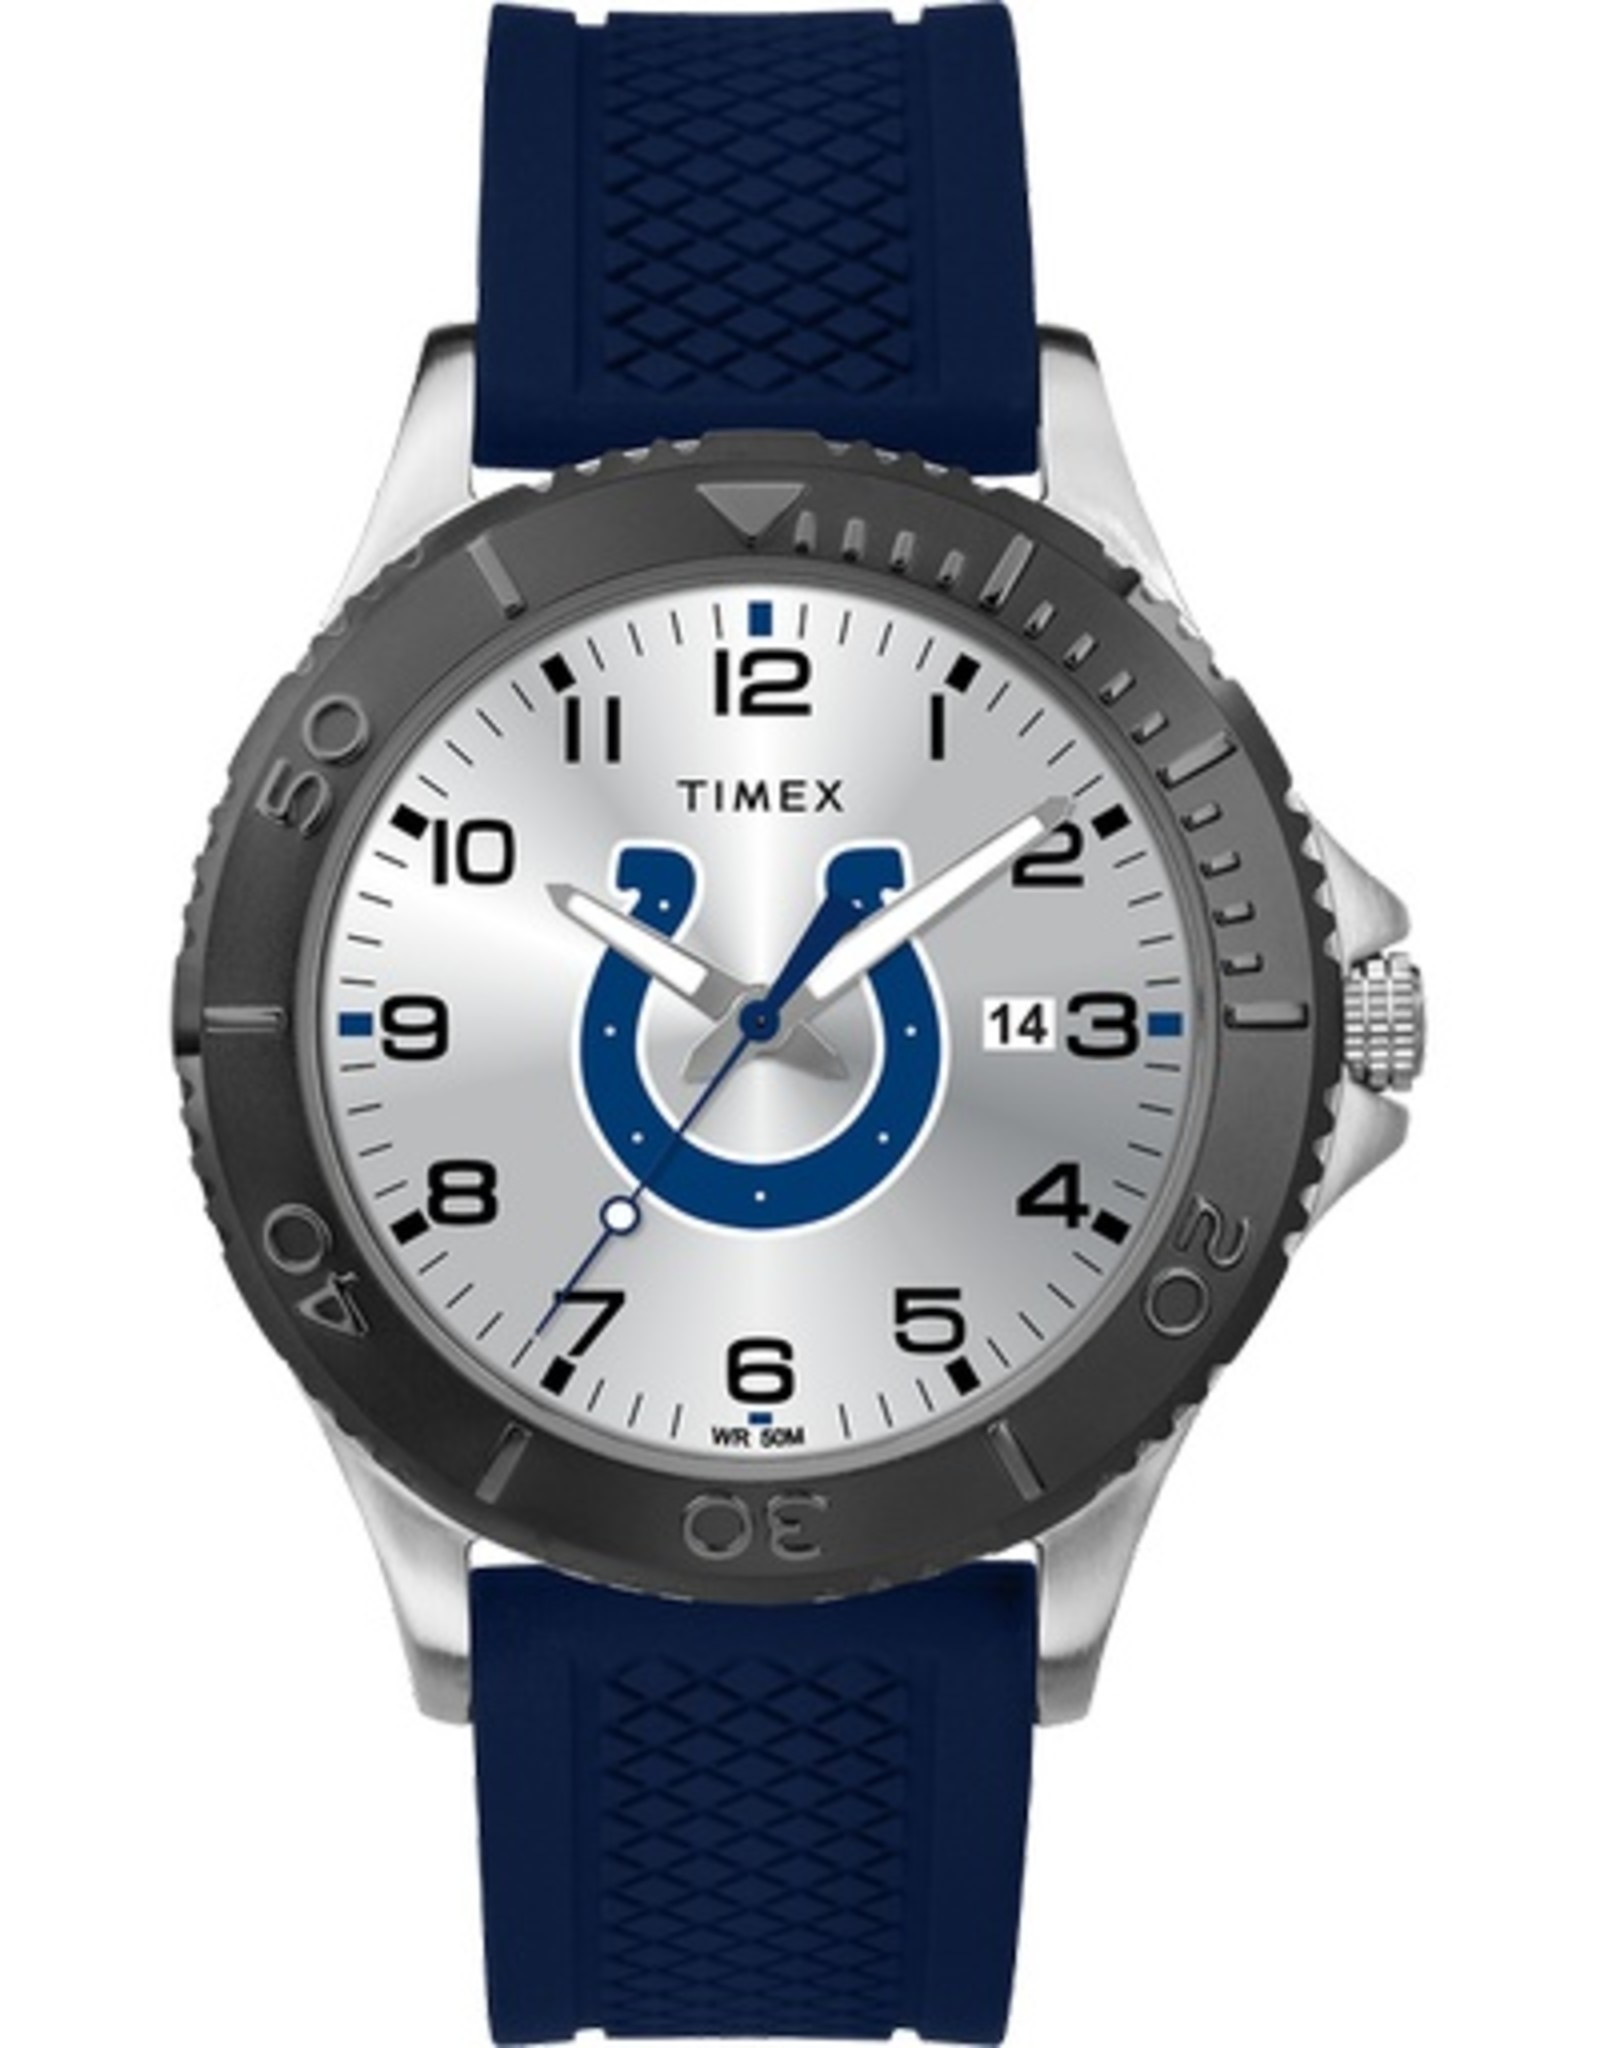 Indianapolis Colts Timex Gamer Watch